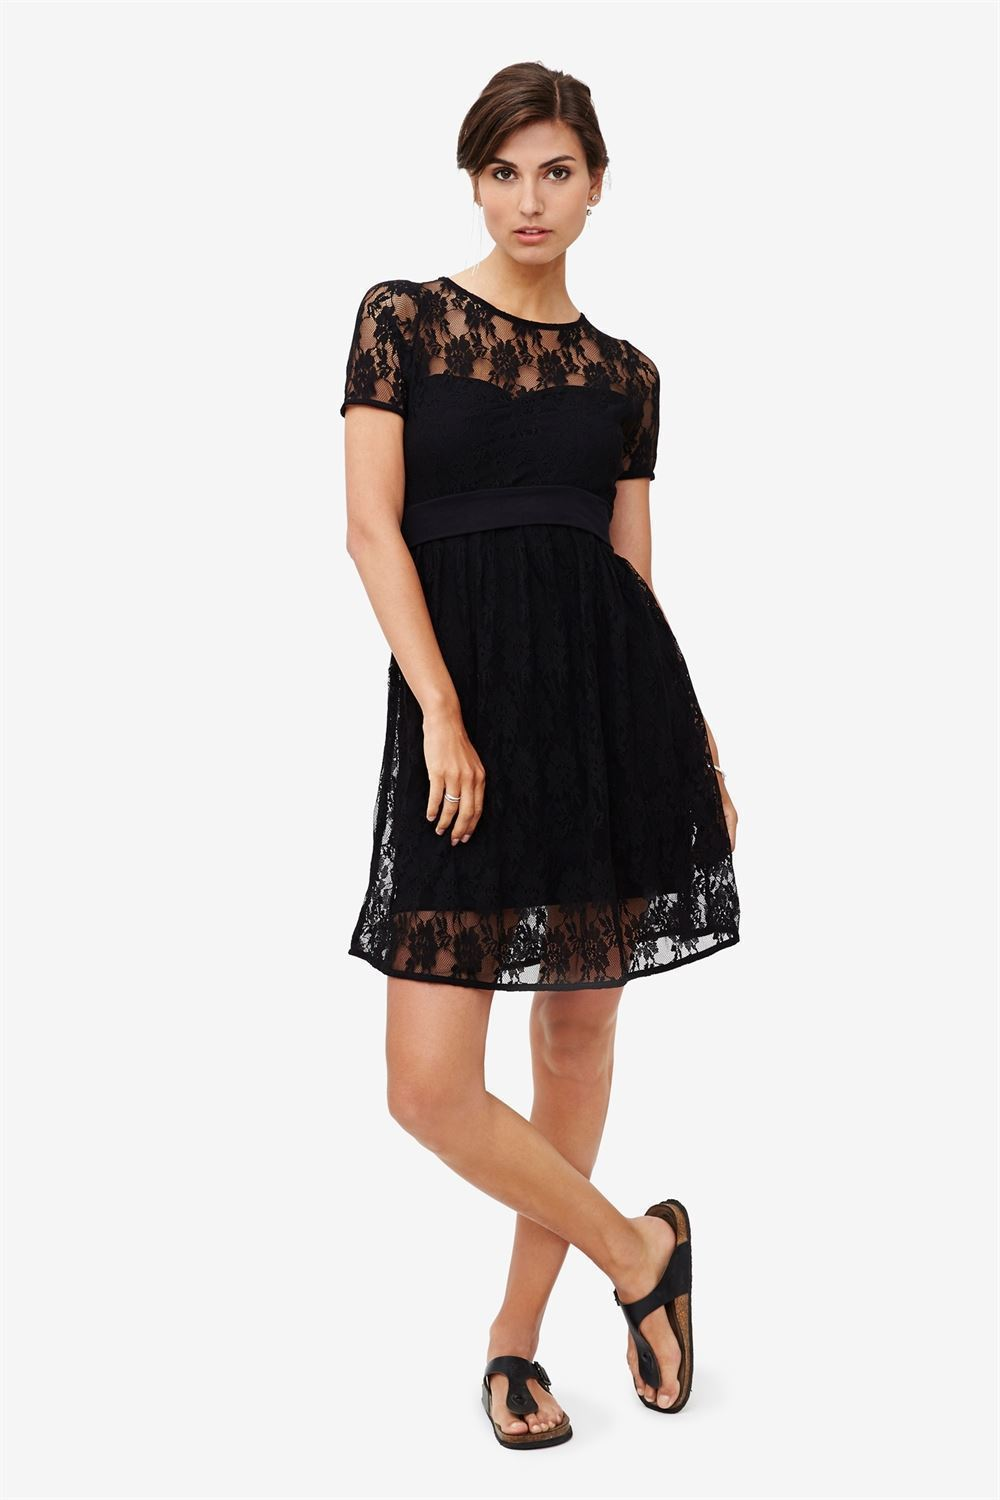 Black lace nursing dress with underdress - full figur